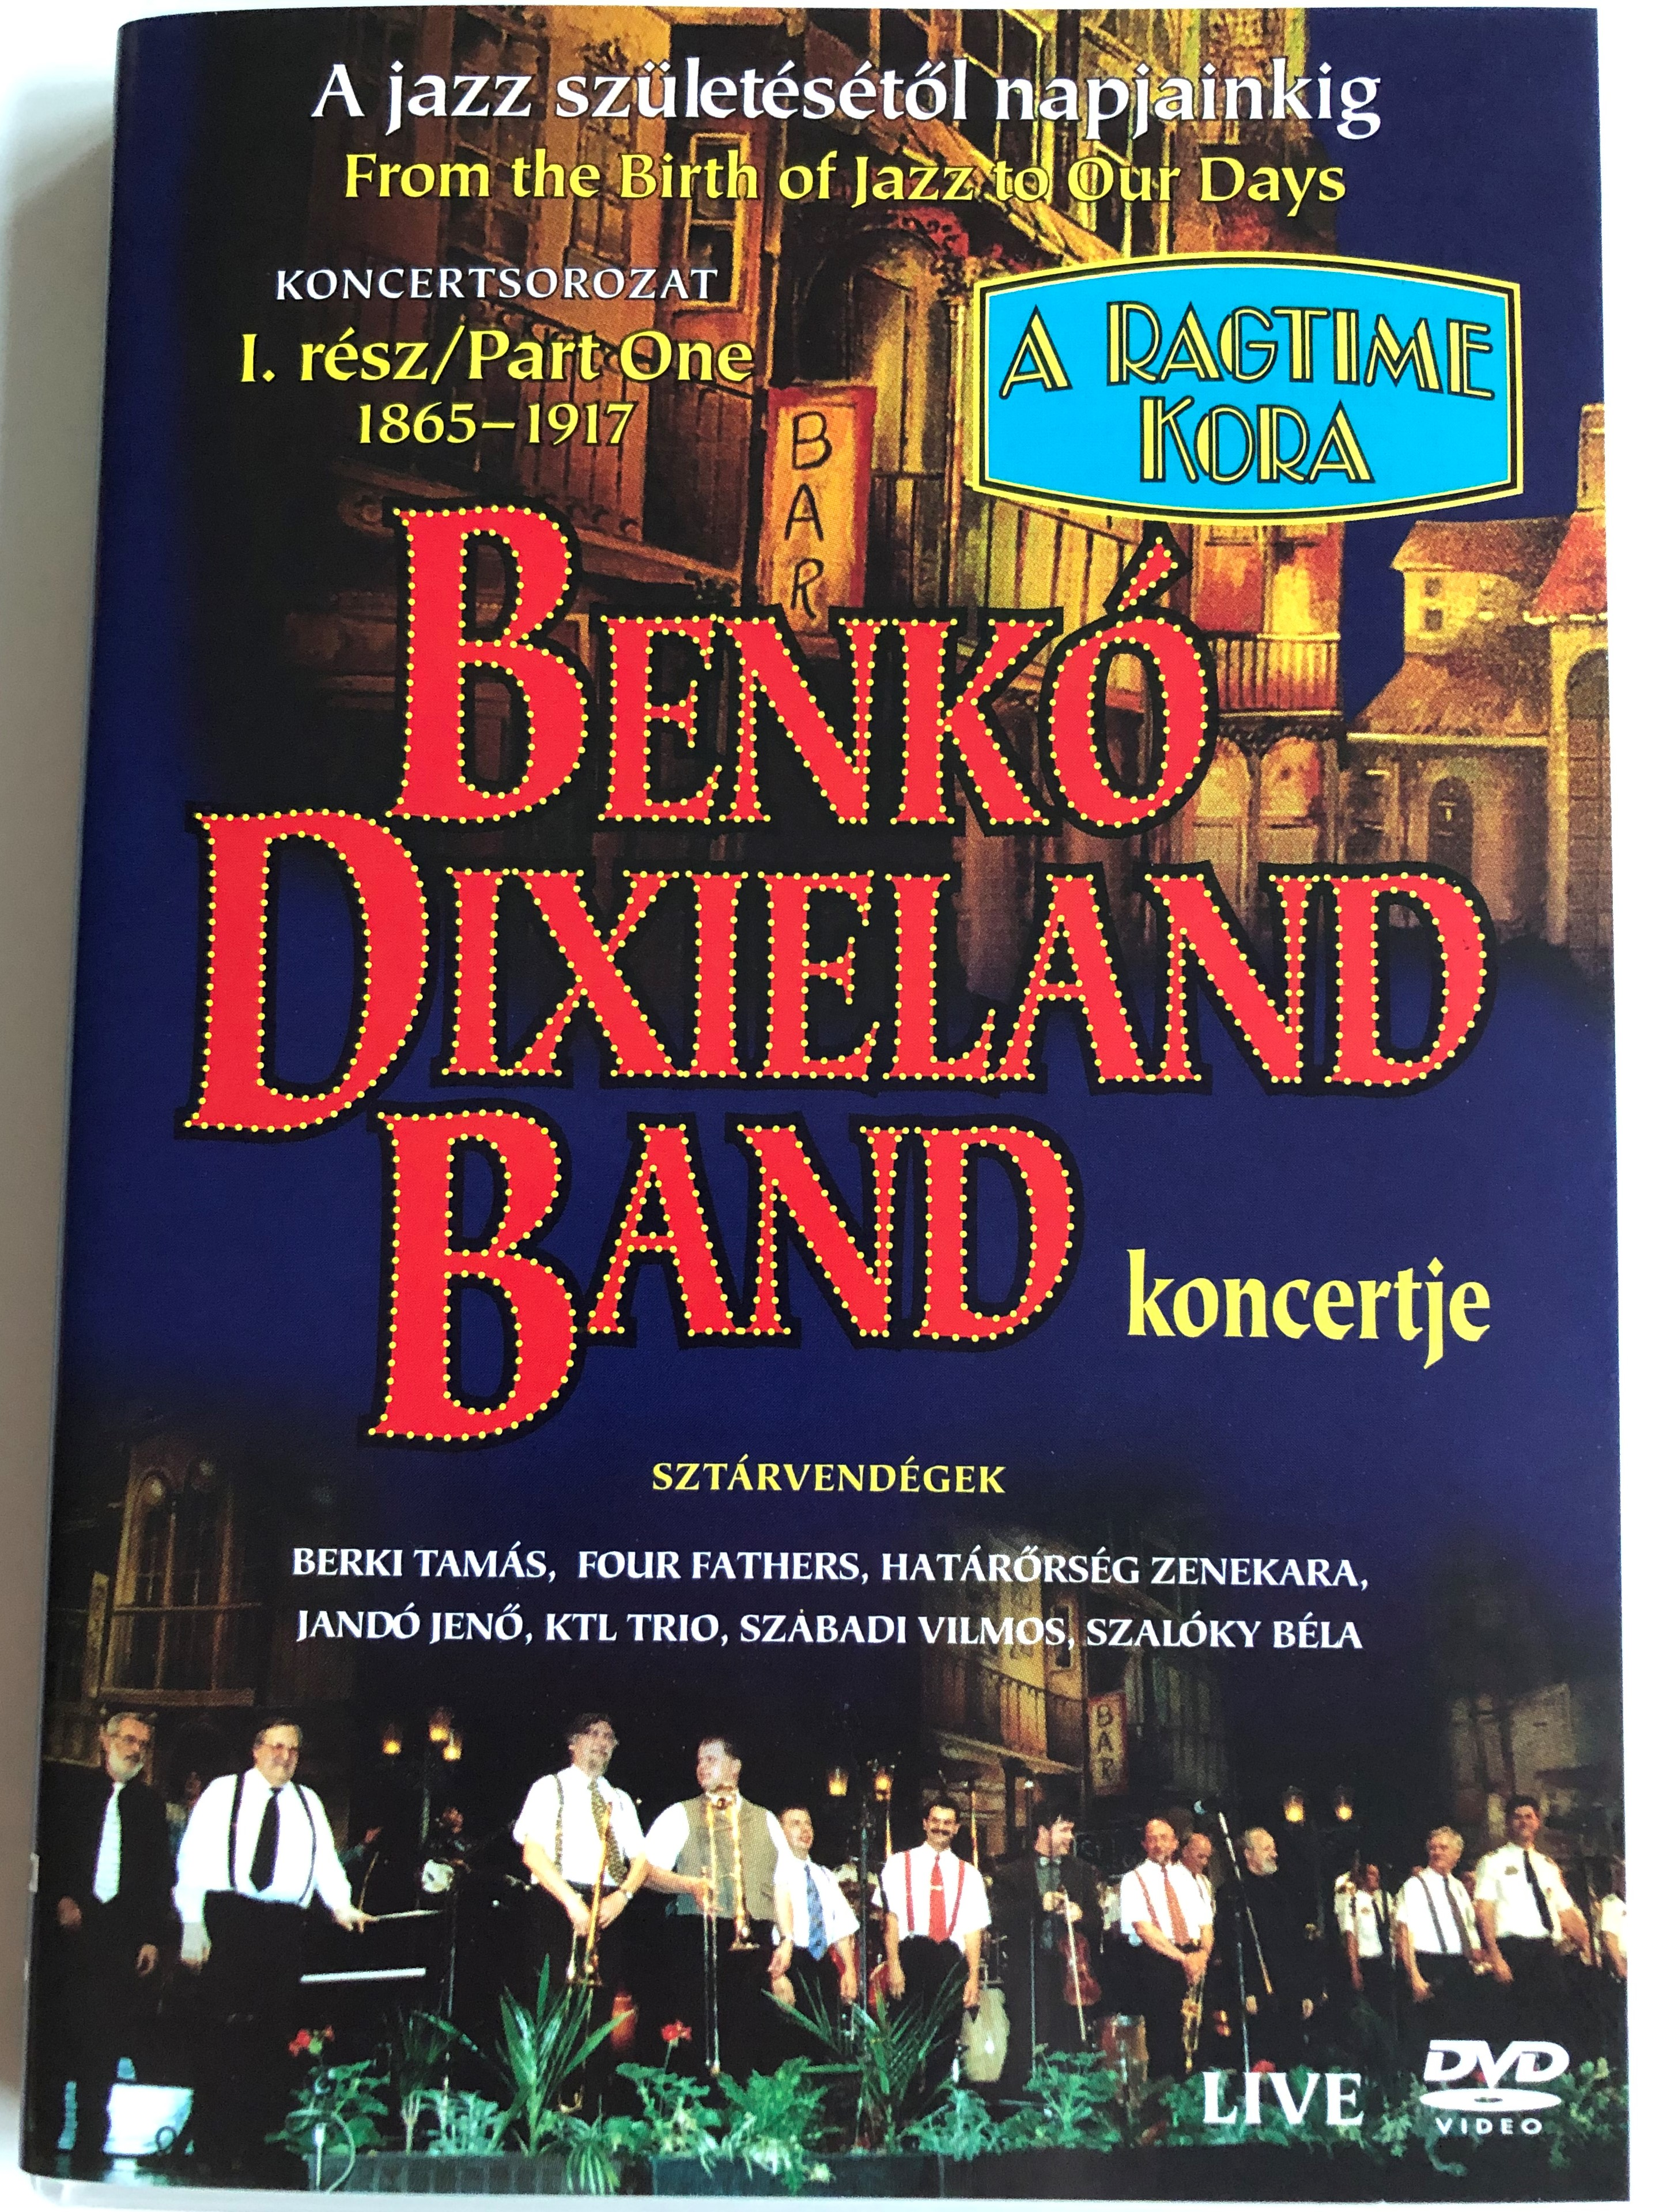 benk-dixieland-band-koncert-a-jazz-sz-let-s-t-l-napjainkig-1865-1917-from-the-birth-of-jazz-to-our-days-benk-dixieland-band-concert-1865-1917-part-one-i.-resz-1-.jpg